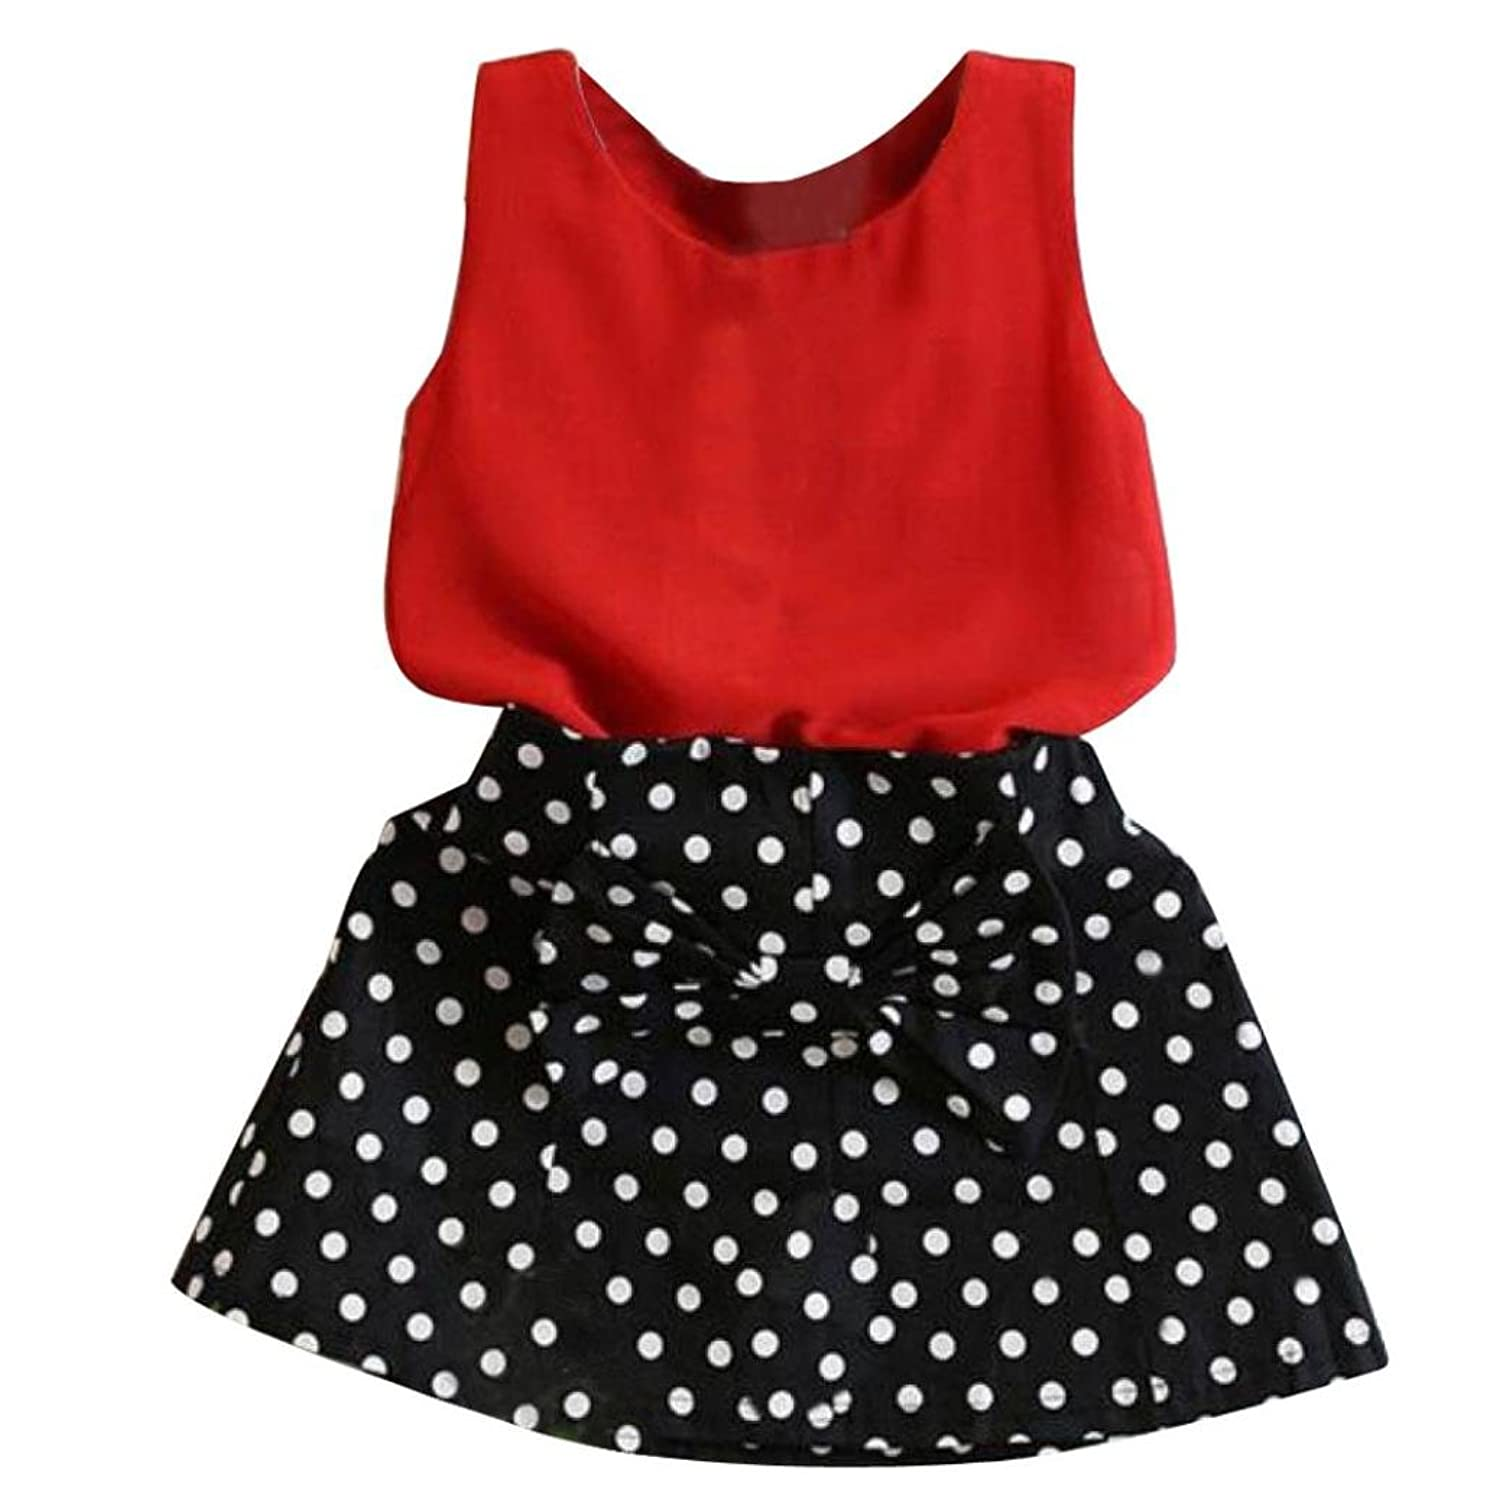 b329cb7ee This cute and comfy clothes set is designed specially for your girls,Toddler  Girls, baby girls, with Comfortable & soft design, to protect and take good  ...